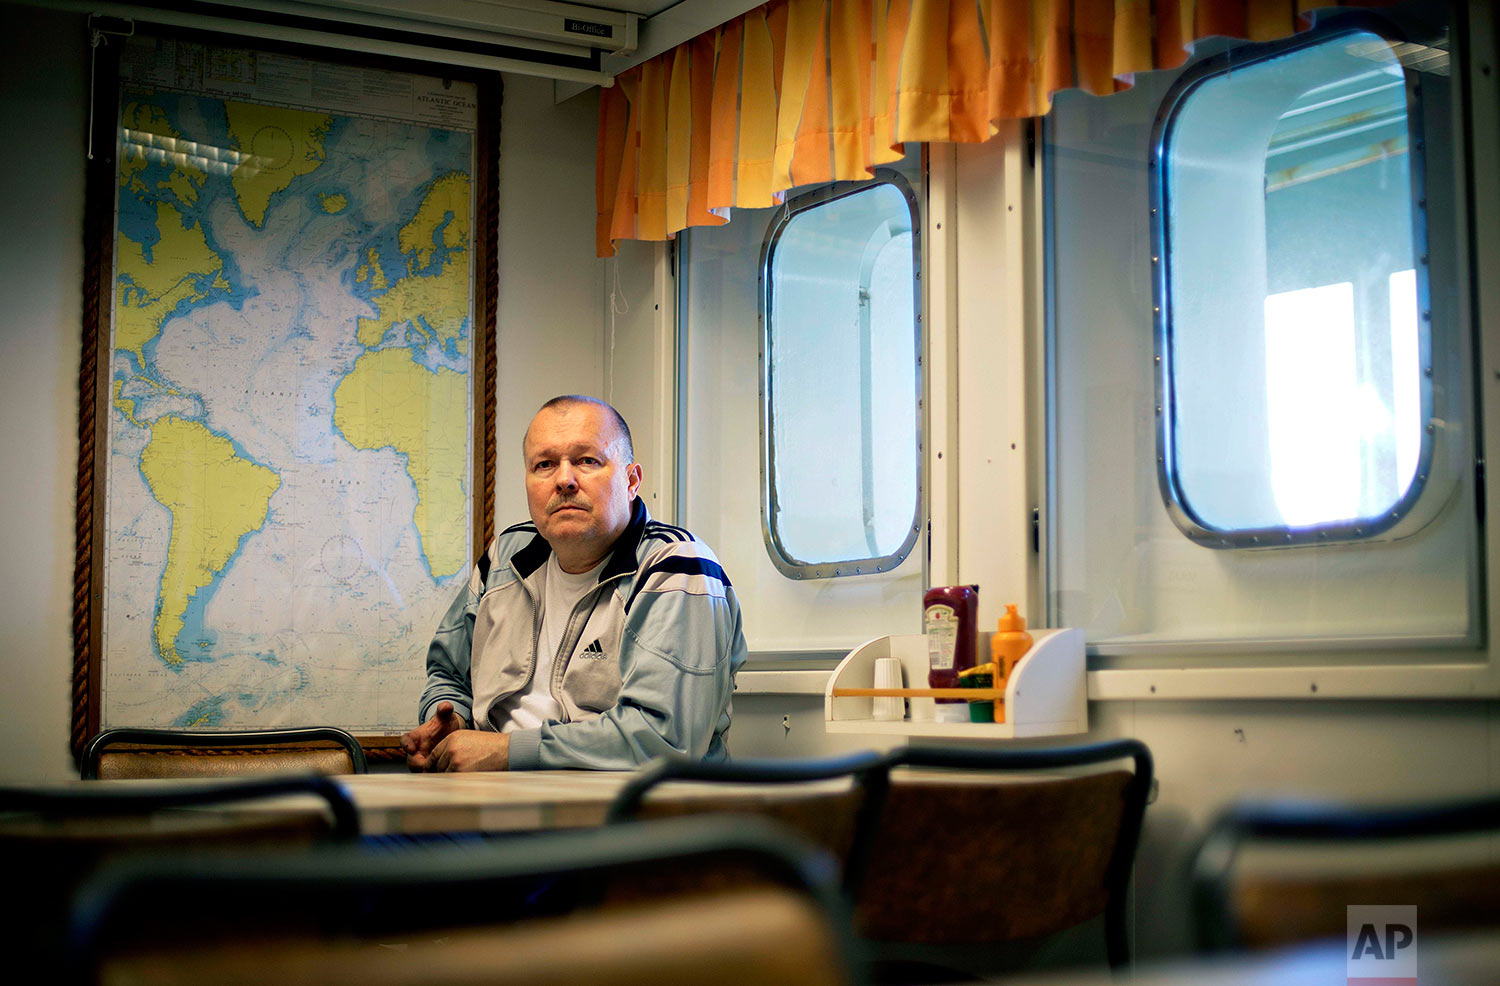 "Engine repairman Jari Jarvinen, 58, sits for a portrait in the mess hall after finishing a night shift aboard the Finnish icebreaker MSV Nordica as it sails in the North Pacific Ocean toward the Bering Strait, Tuesday, July 11, 2017. Jarvinen started working on boats over 30 years ago. ""I've been there before. For me it's normal work,"" said Jarvinen of the Northwest Passage. ""I like it though. Not everyday is the same. You look outside the window and it's always a different place."" (AP Photo/David Goldman)"